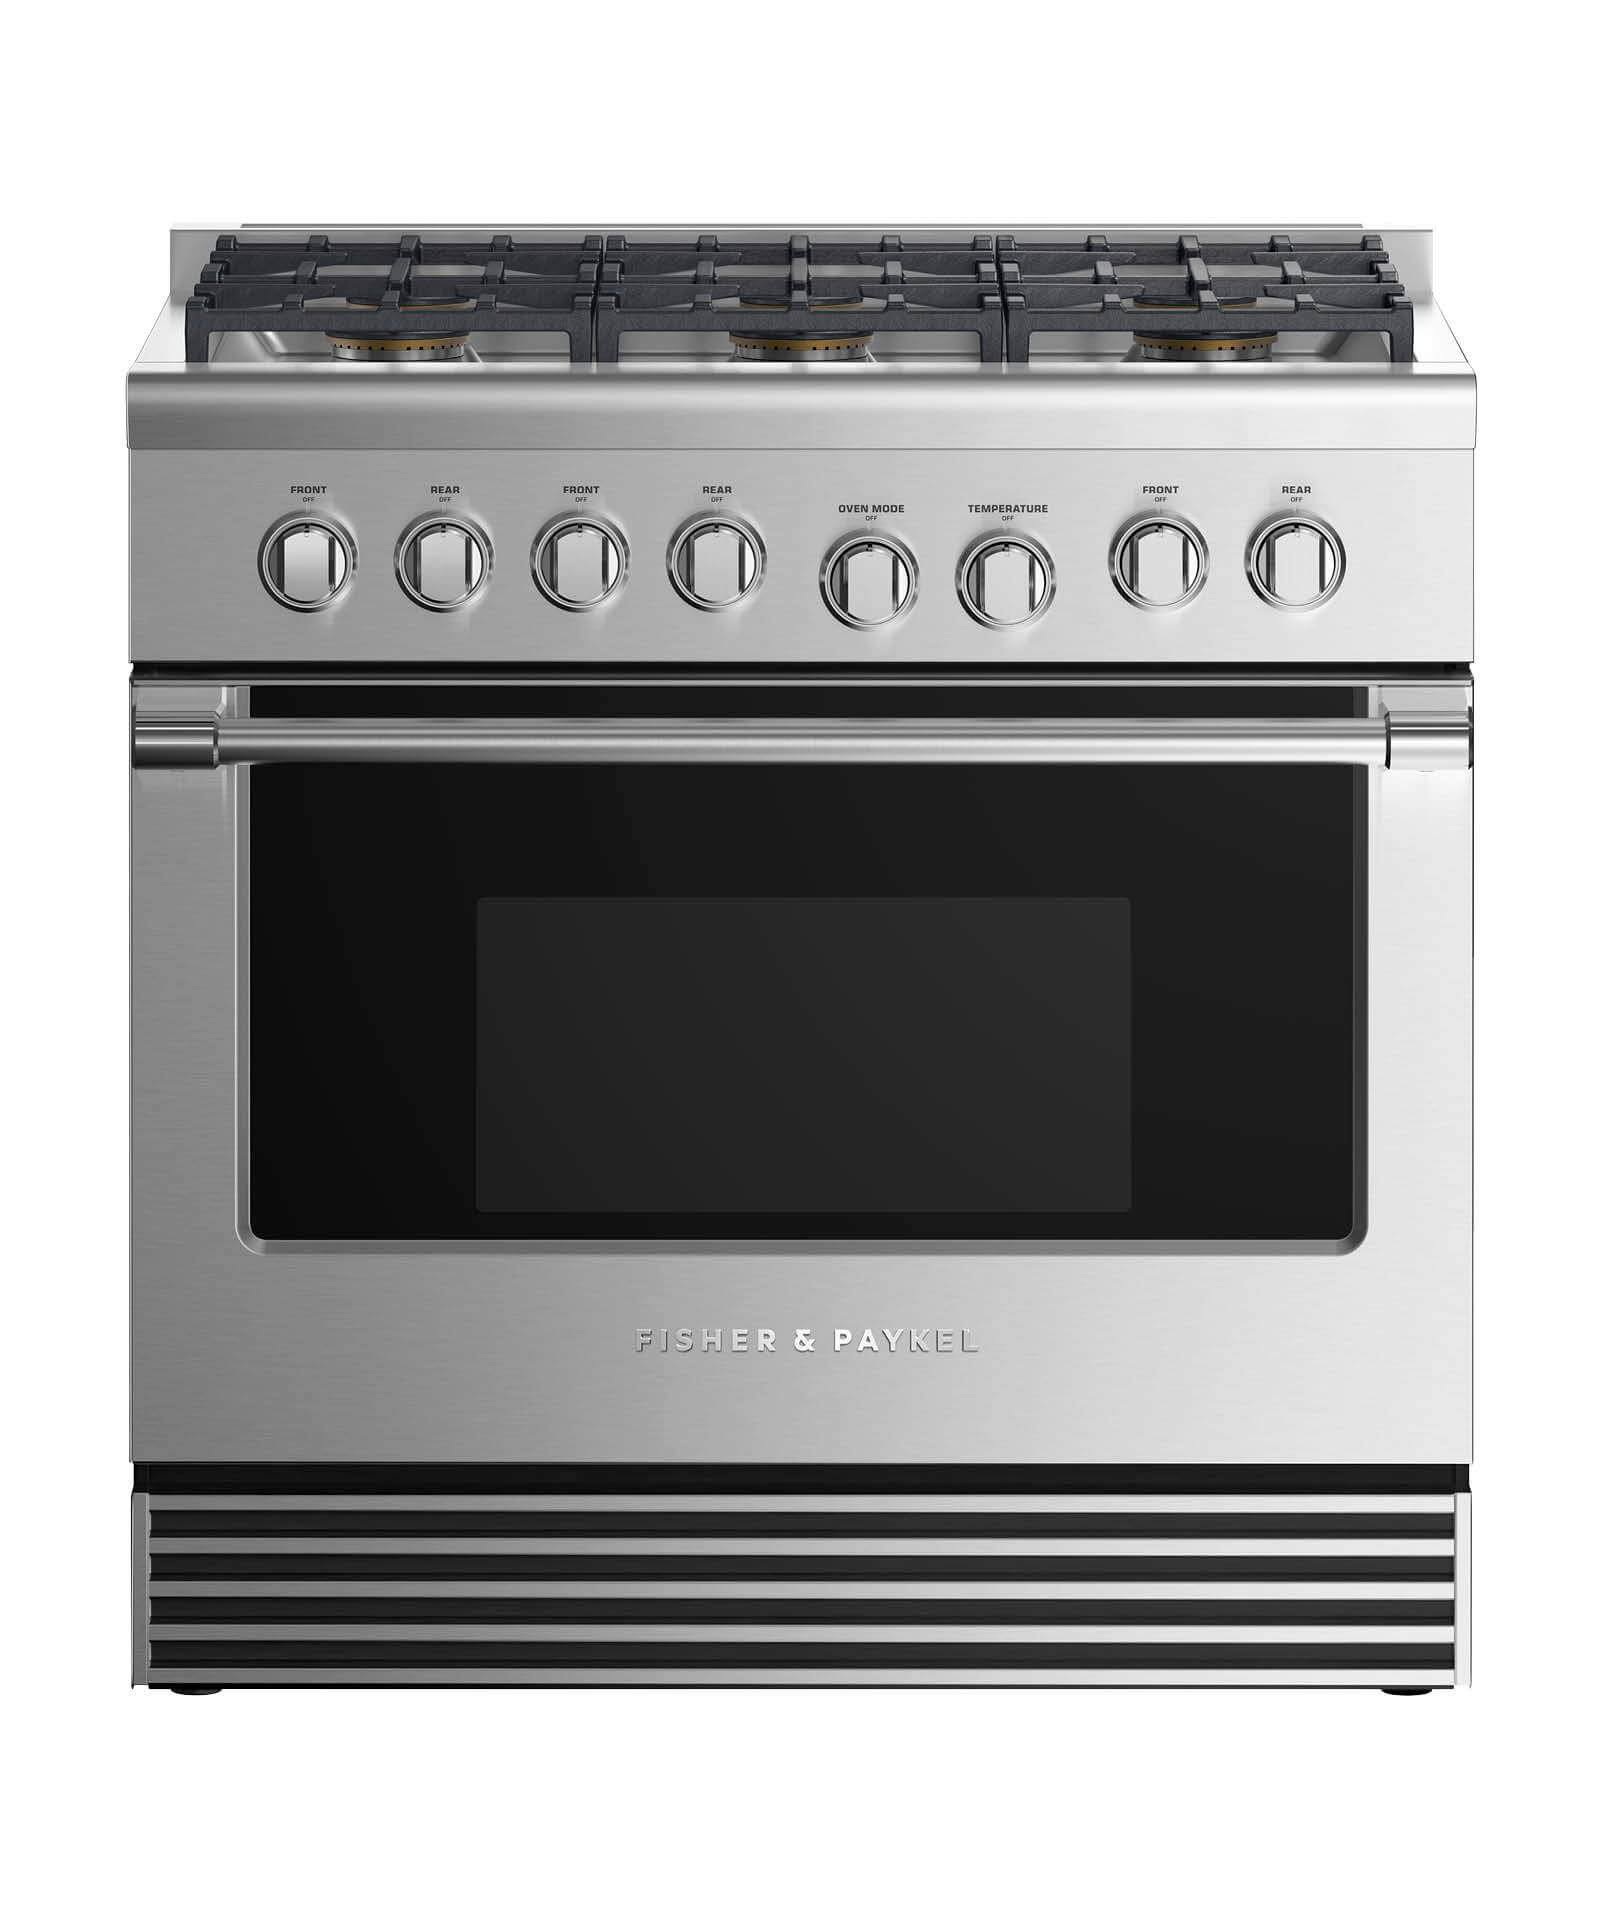 "Fisher and Paykel Gas Range 36"", 6 Burners"